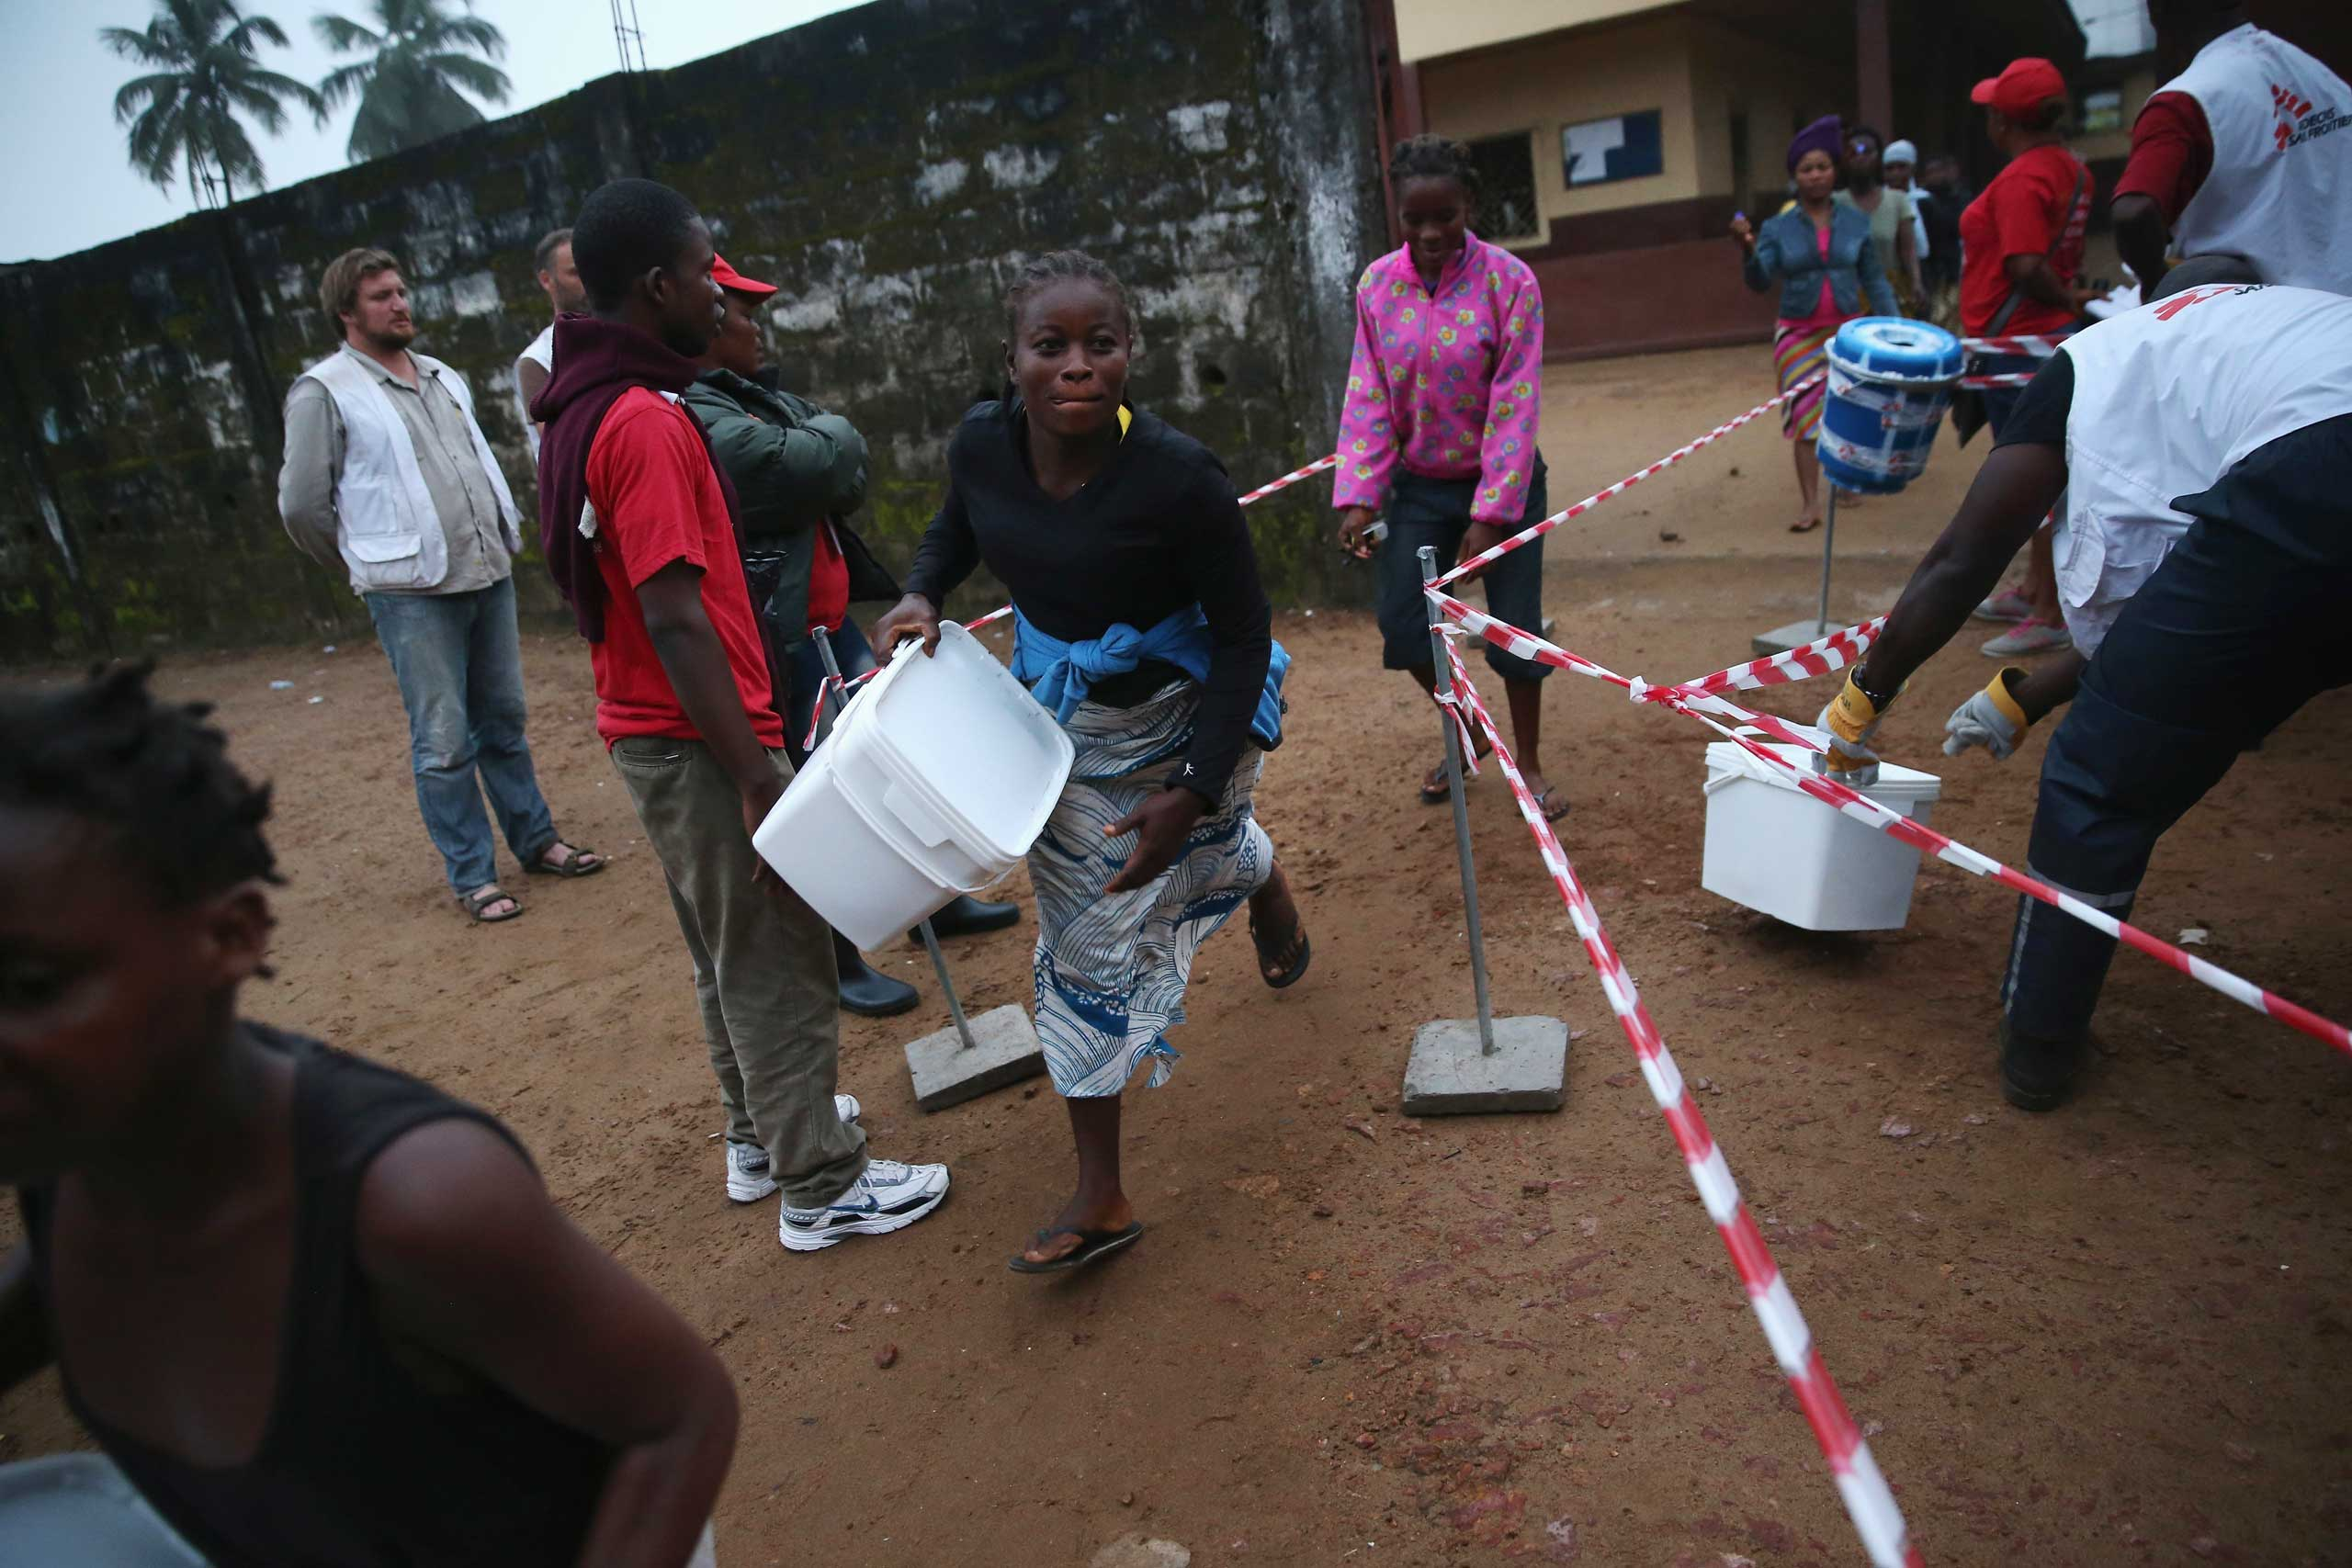 Residents take home family and home disinfection kits distributed by Doctors Without Borders, on Oct. 4, 2014 in New Kru Town, Liberia.